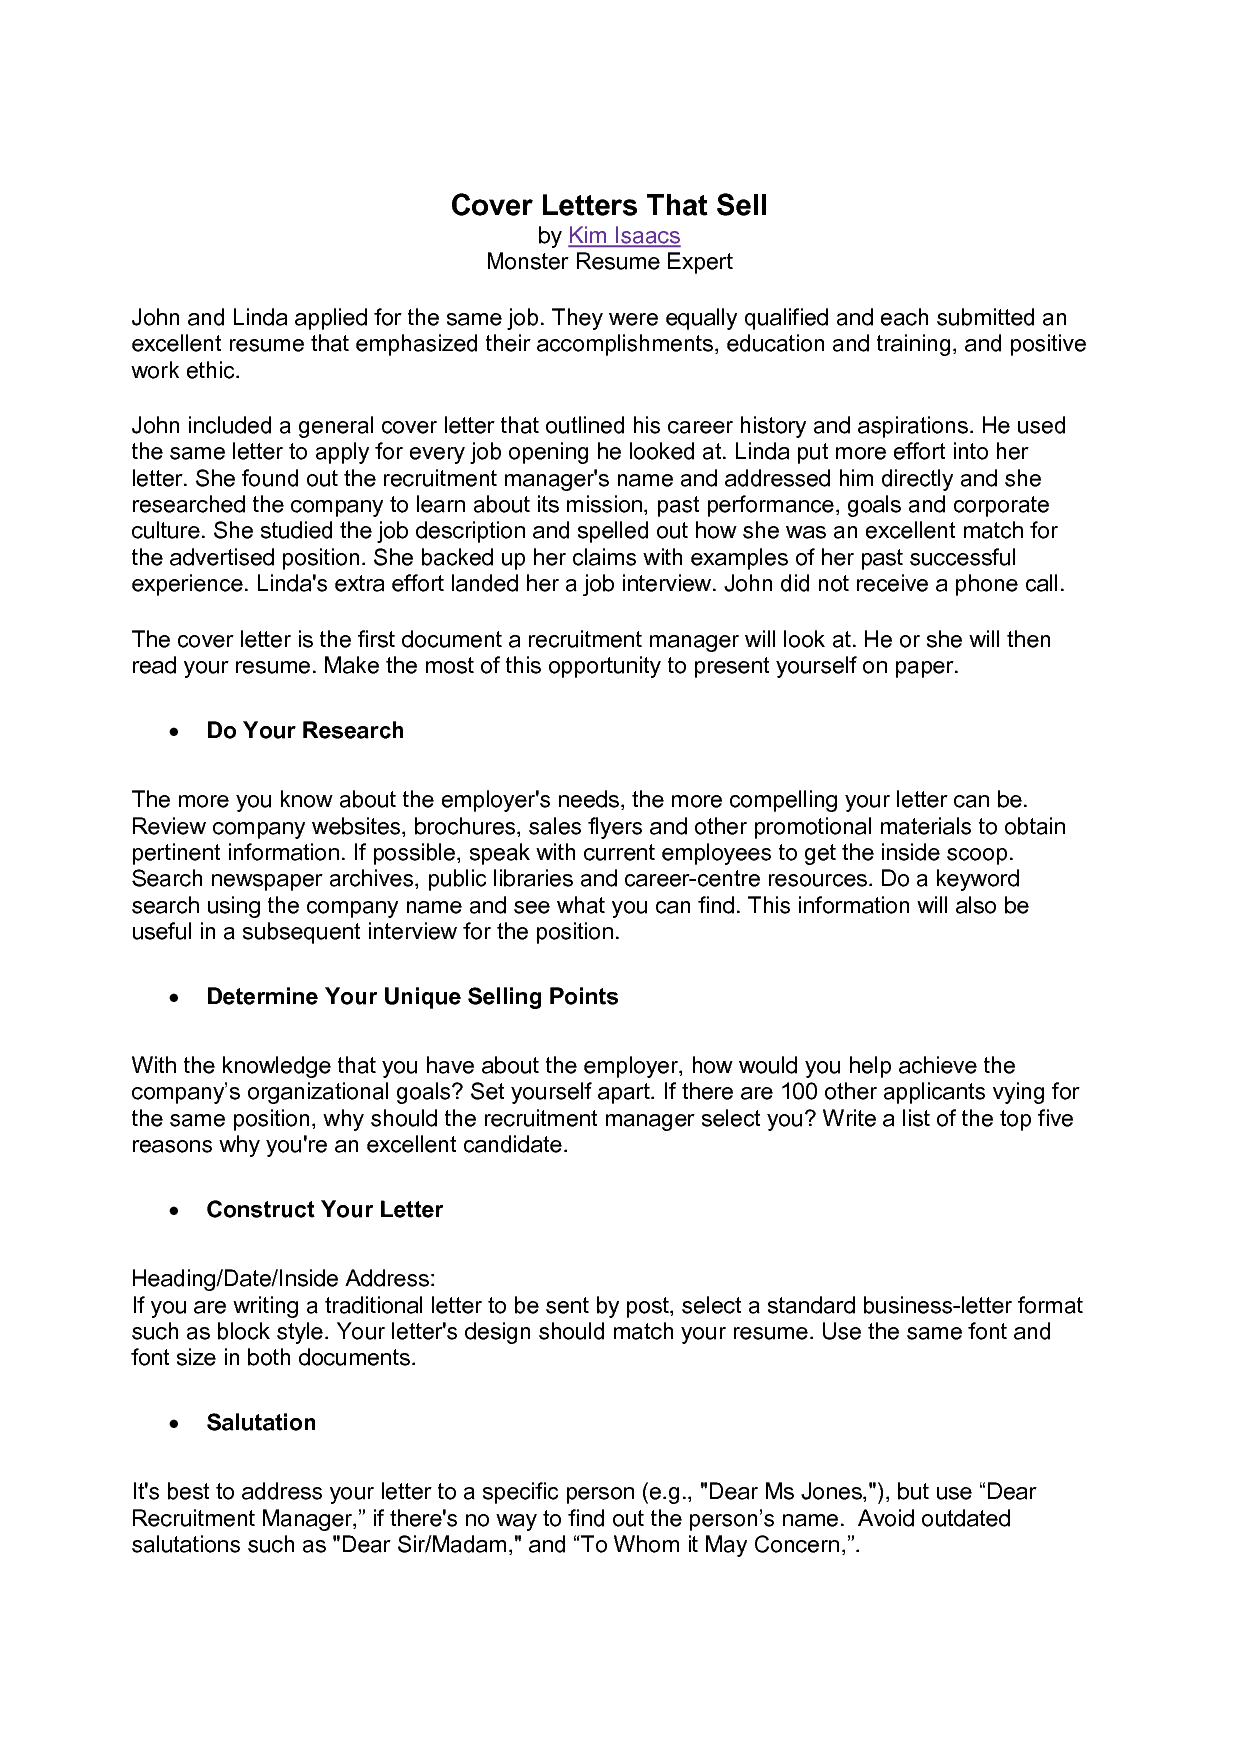 Cover Letter Template Monster Coverlettertemplate